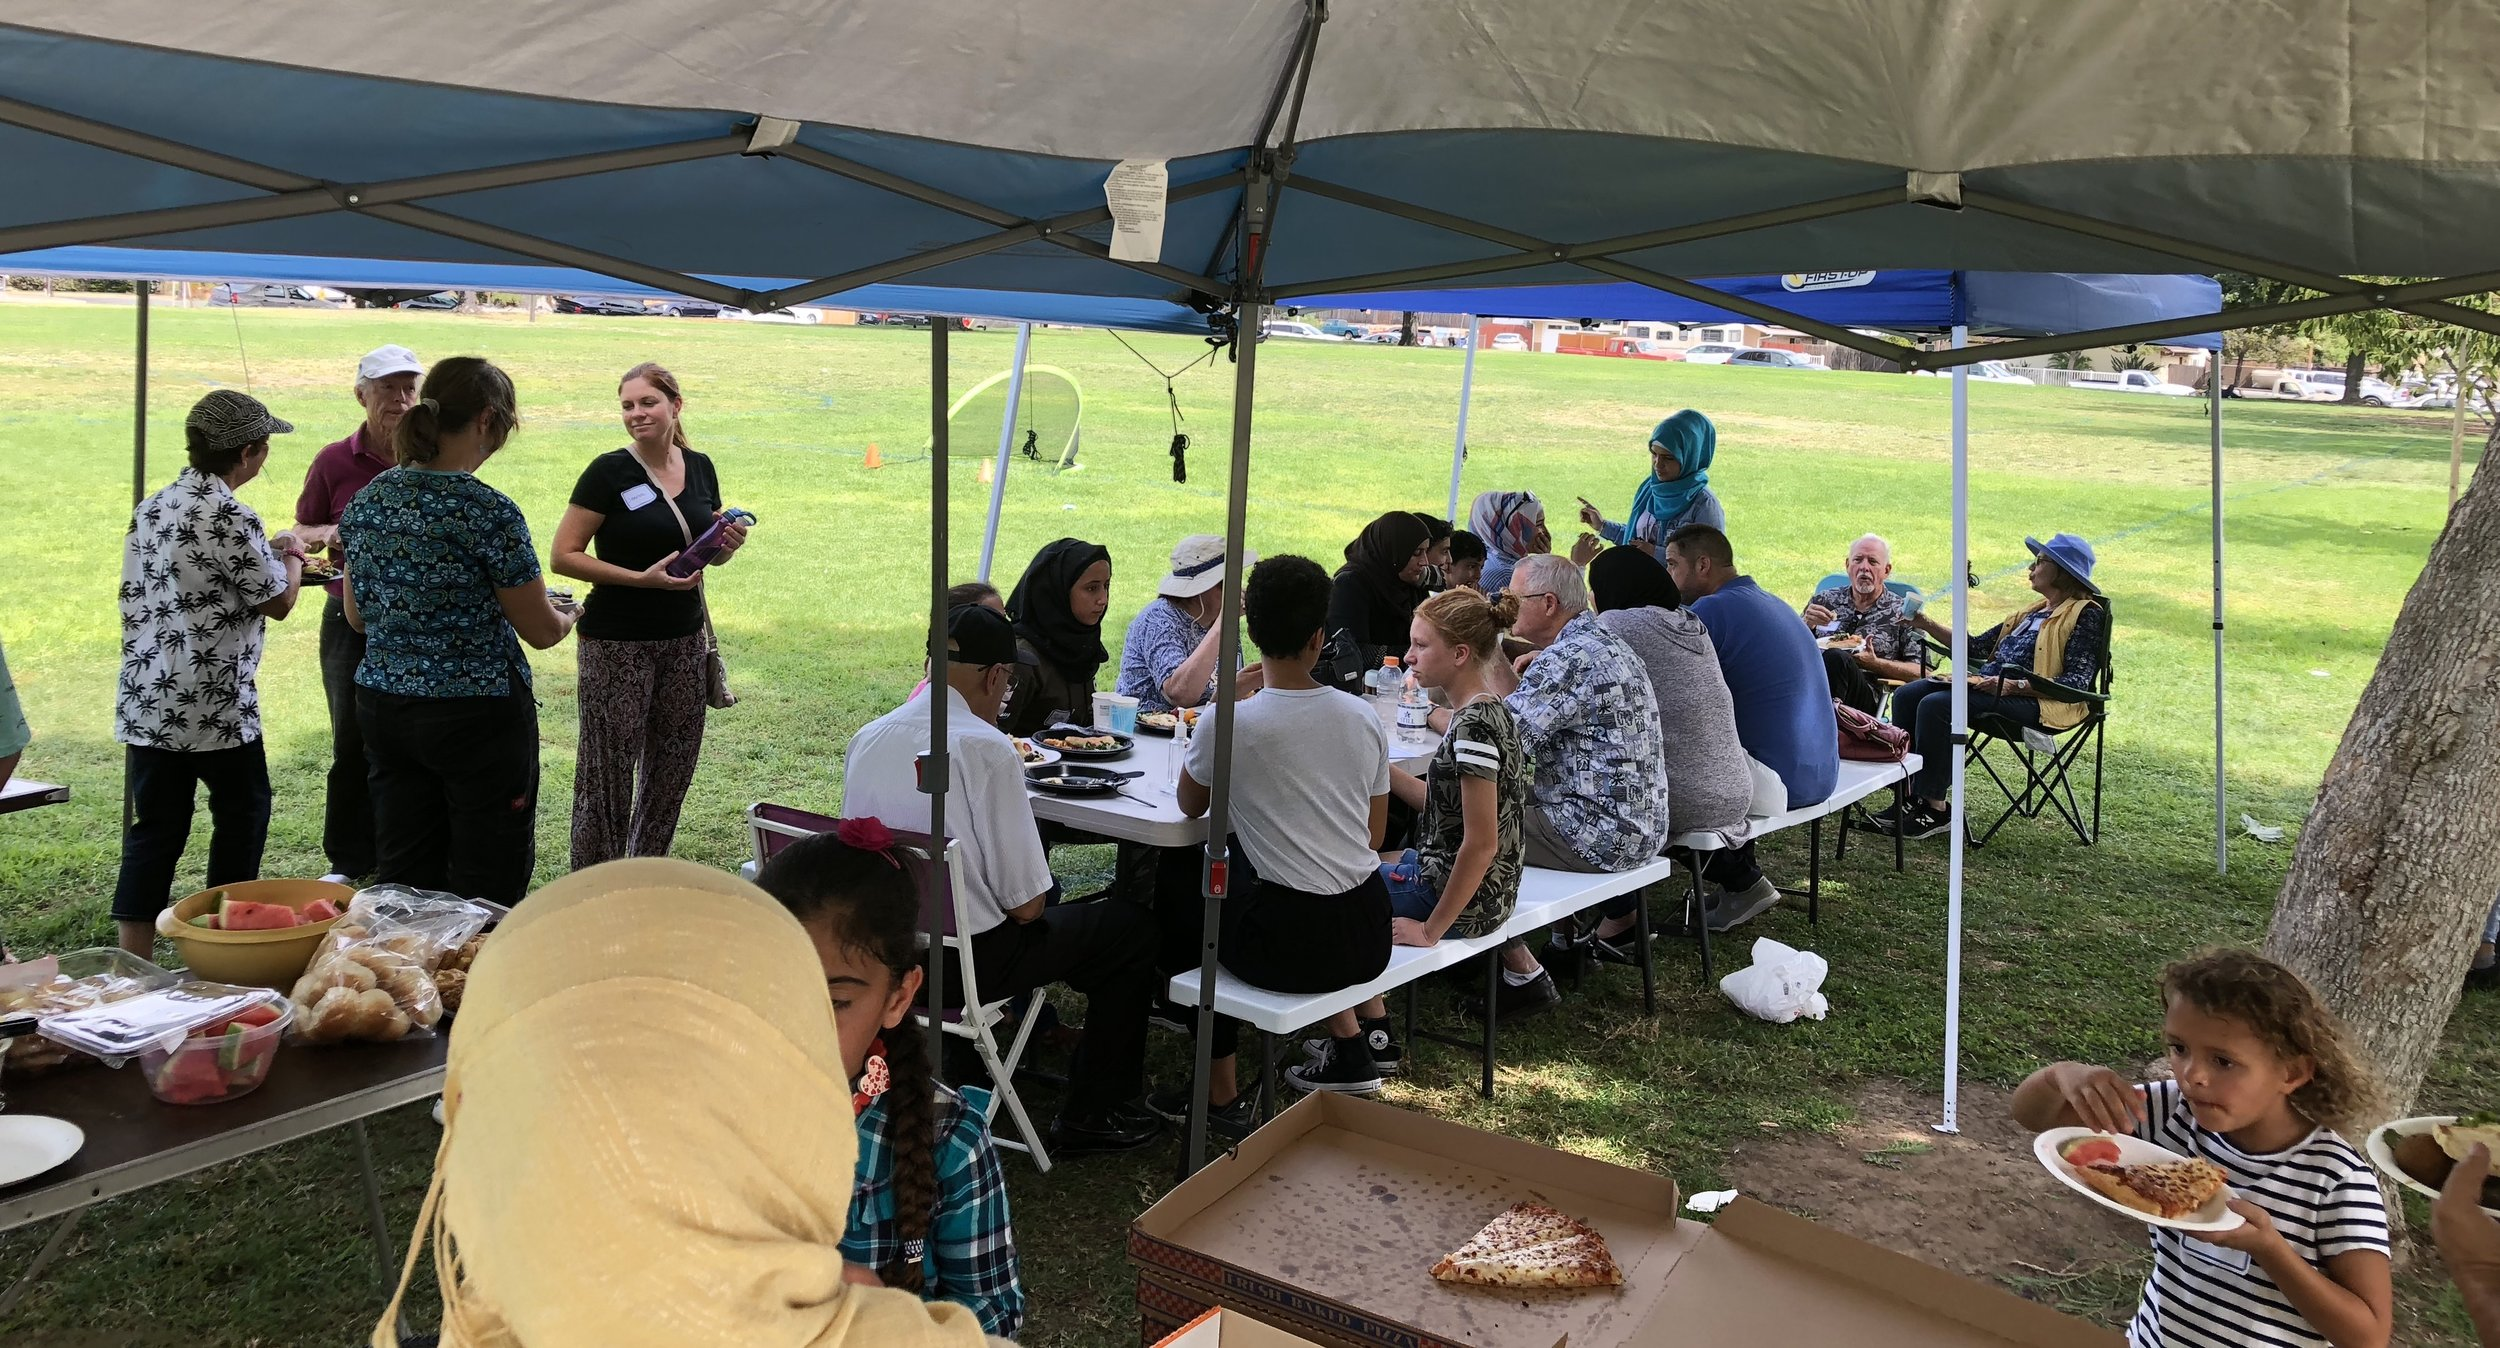 The group met with Syrian refugee families for a picnic at a local park.